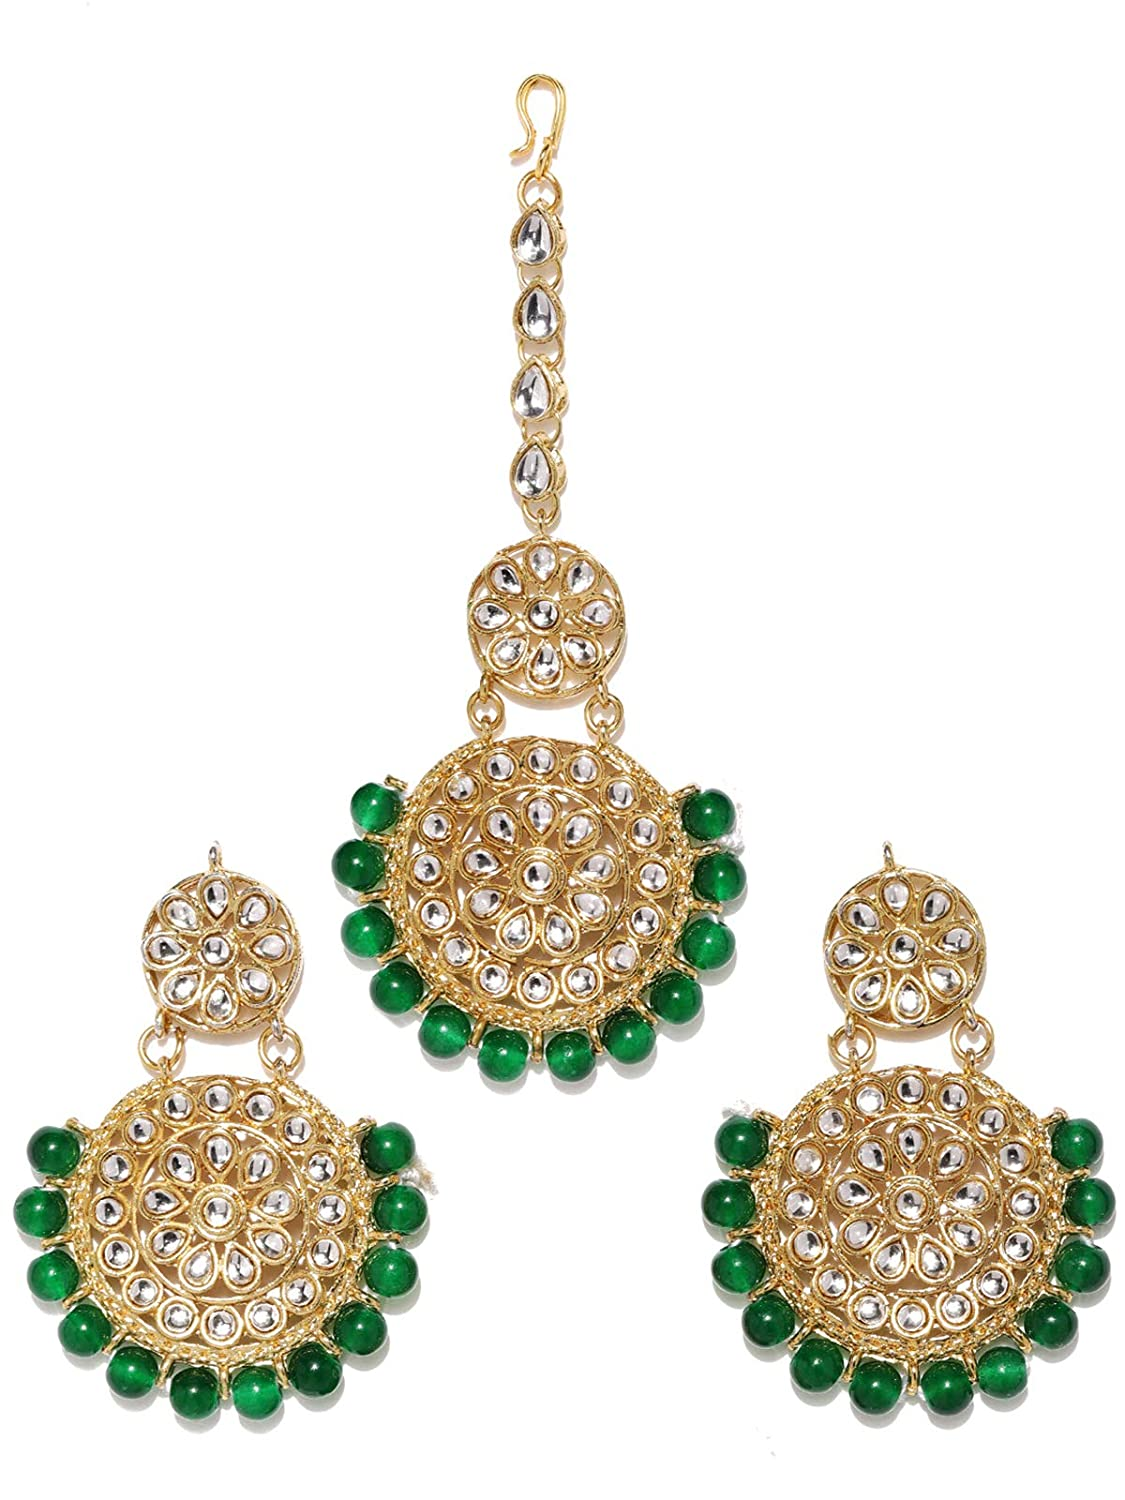 G1 Bollywood Indian Necklace Earrings Tikka Bridal Jewellery Green Beads Set